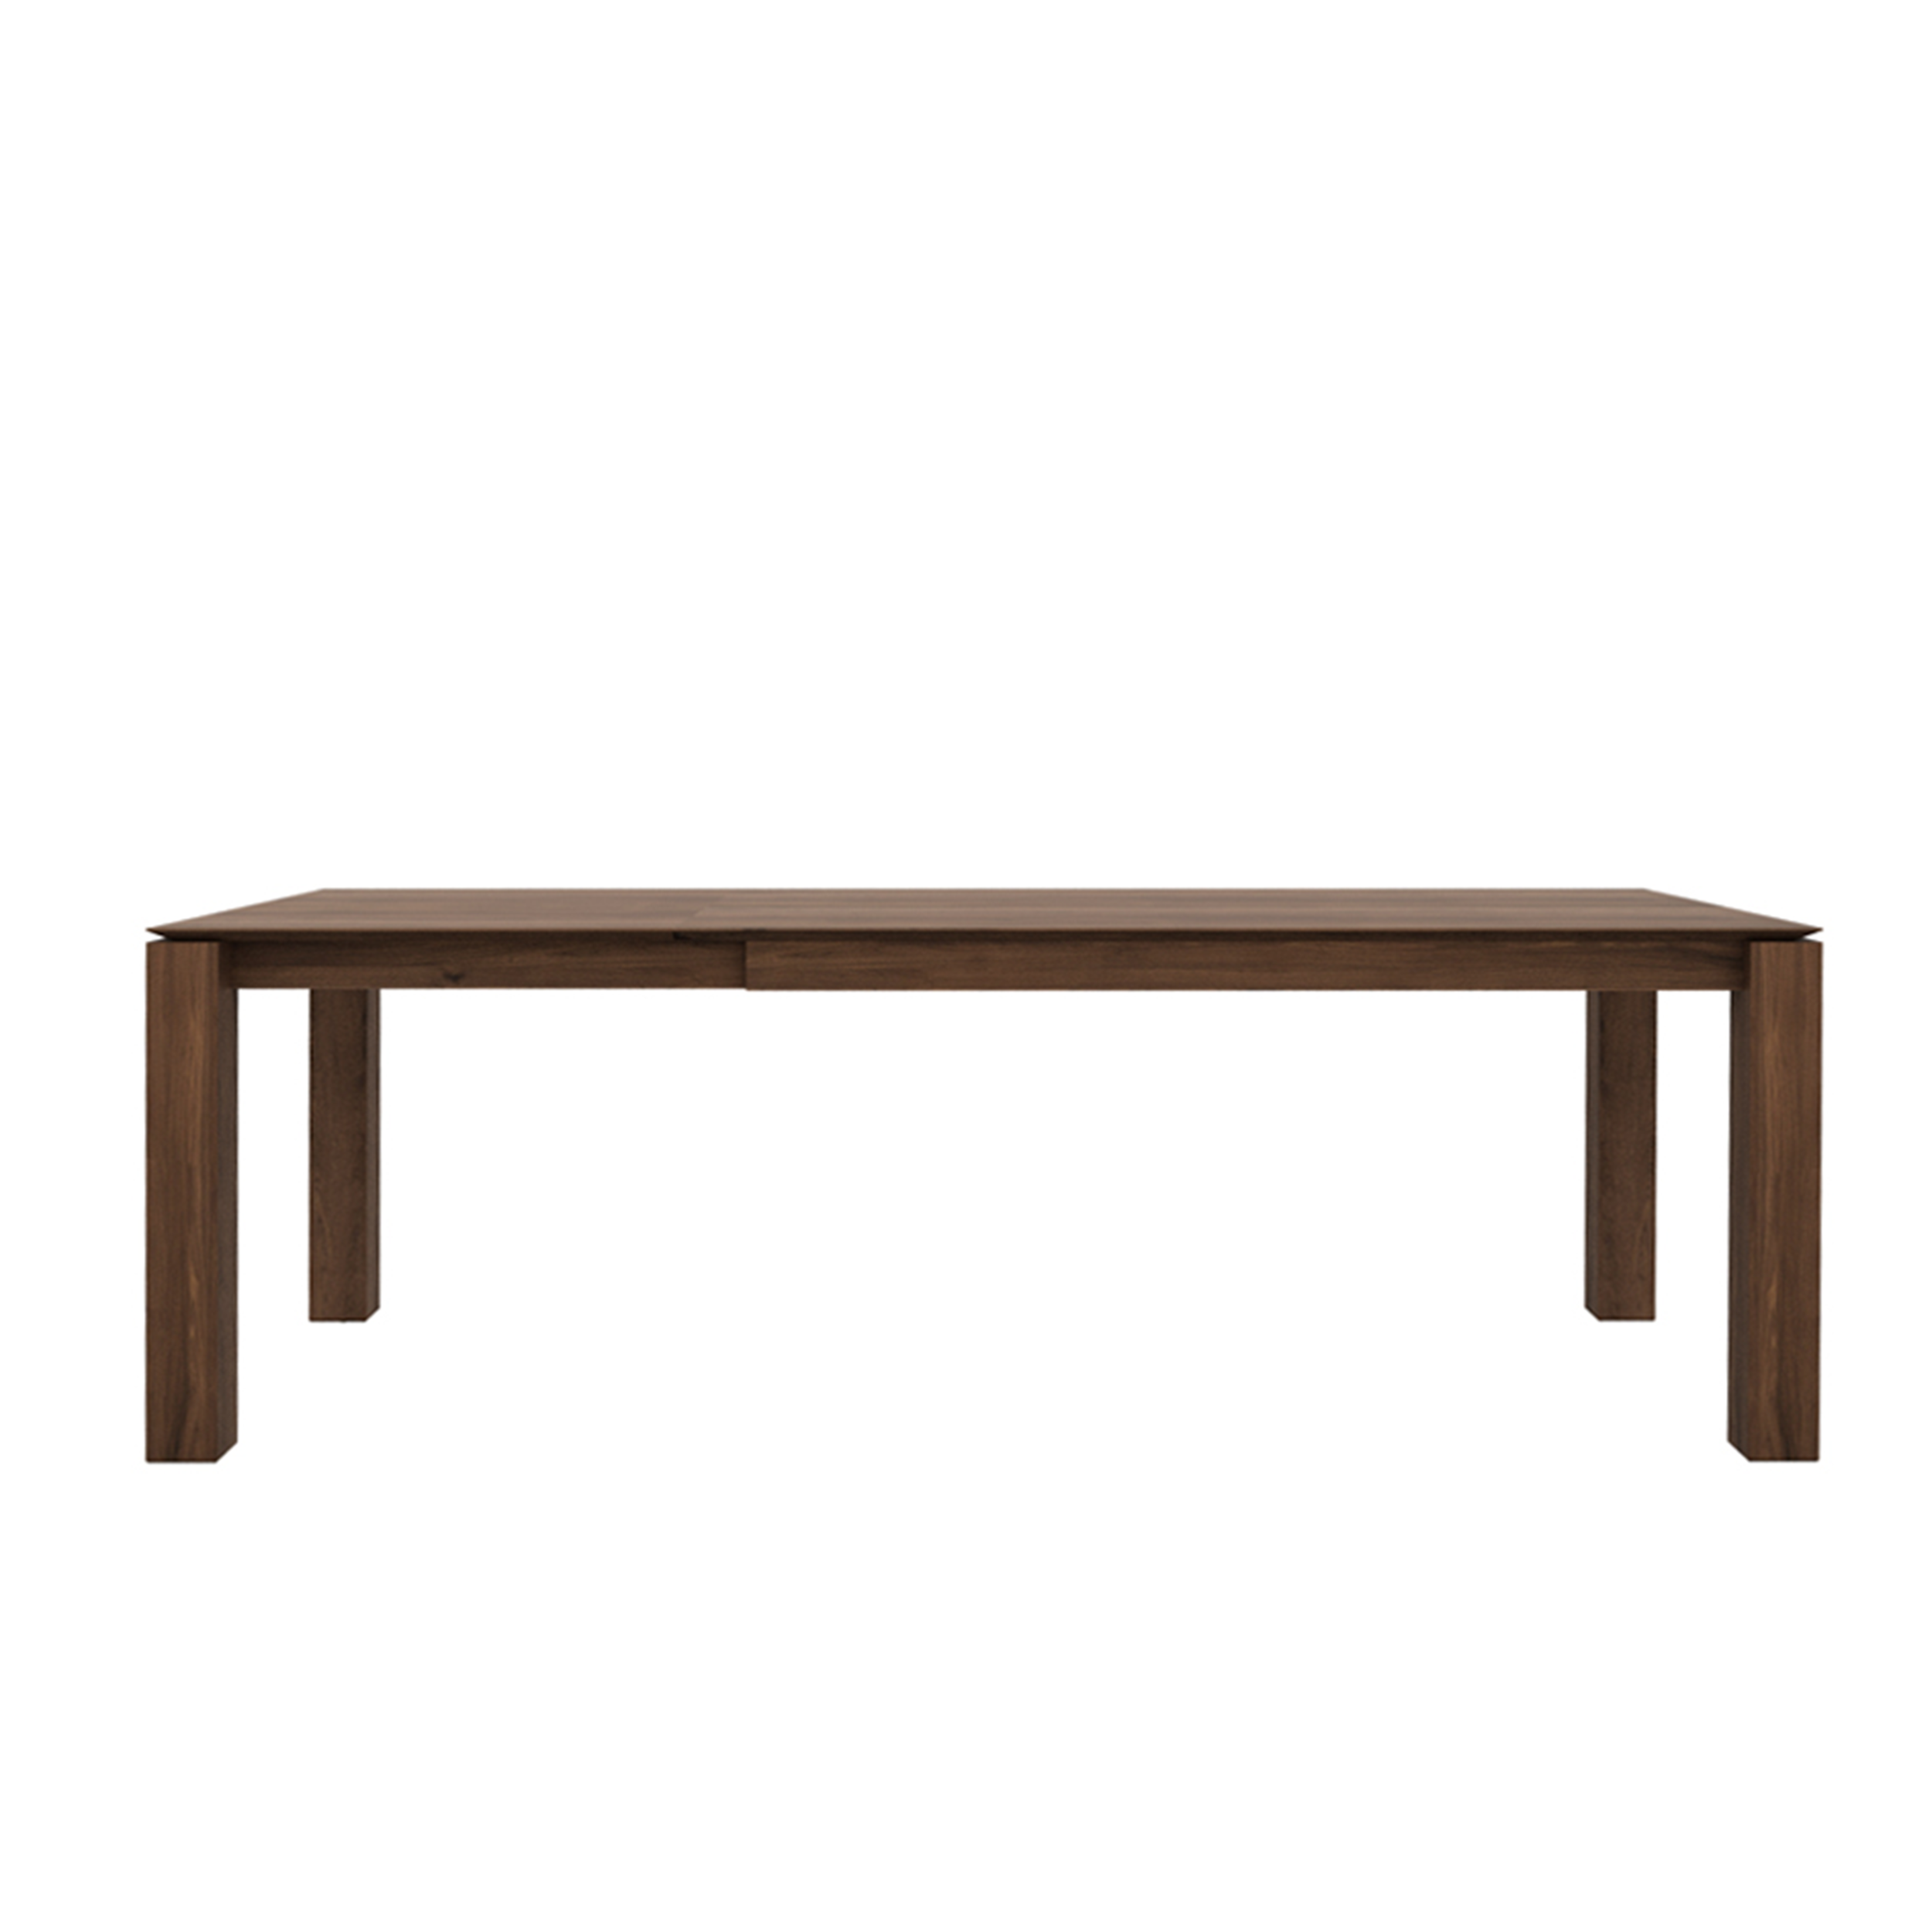 TGE-041943-Walnut-Slice-extendable-dining-table-160-233x90x77_ext_f.jpg.png